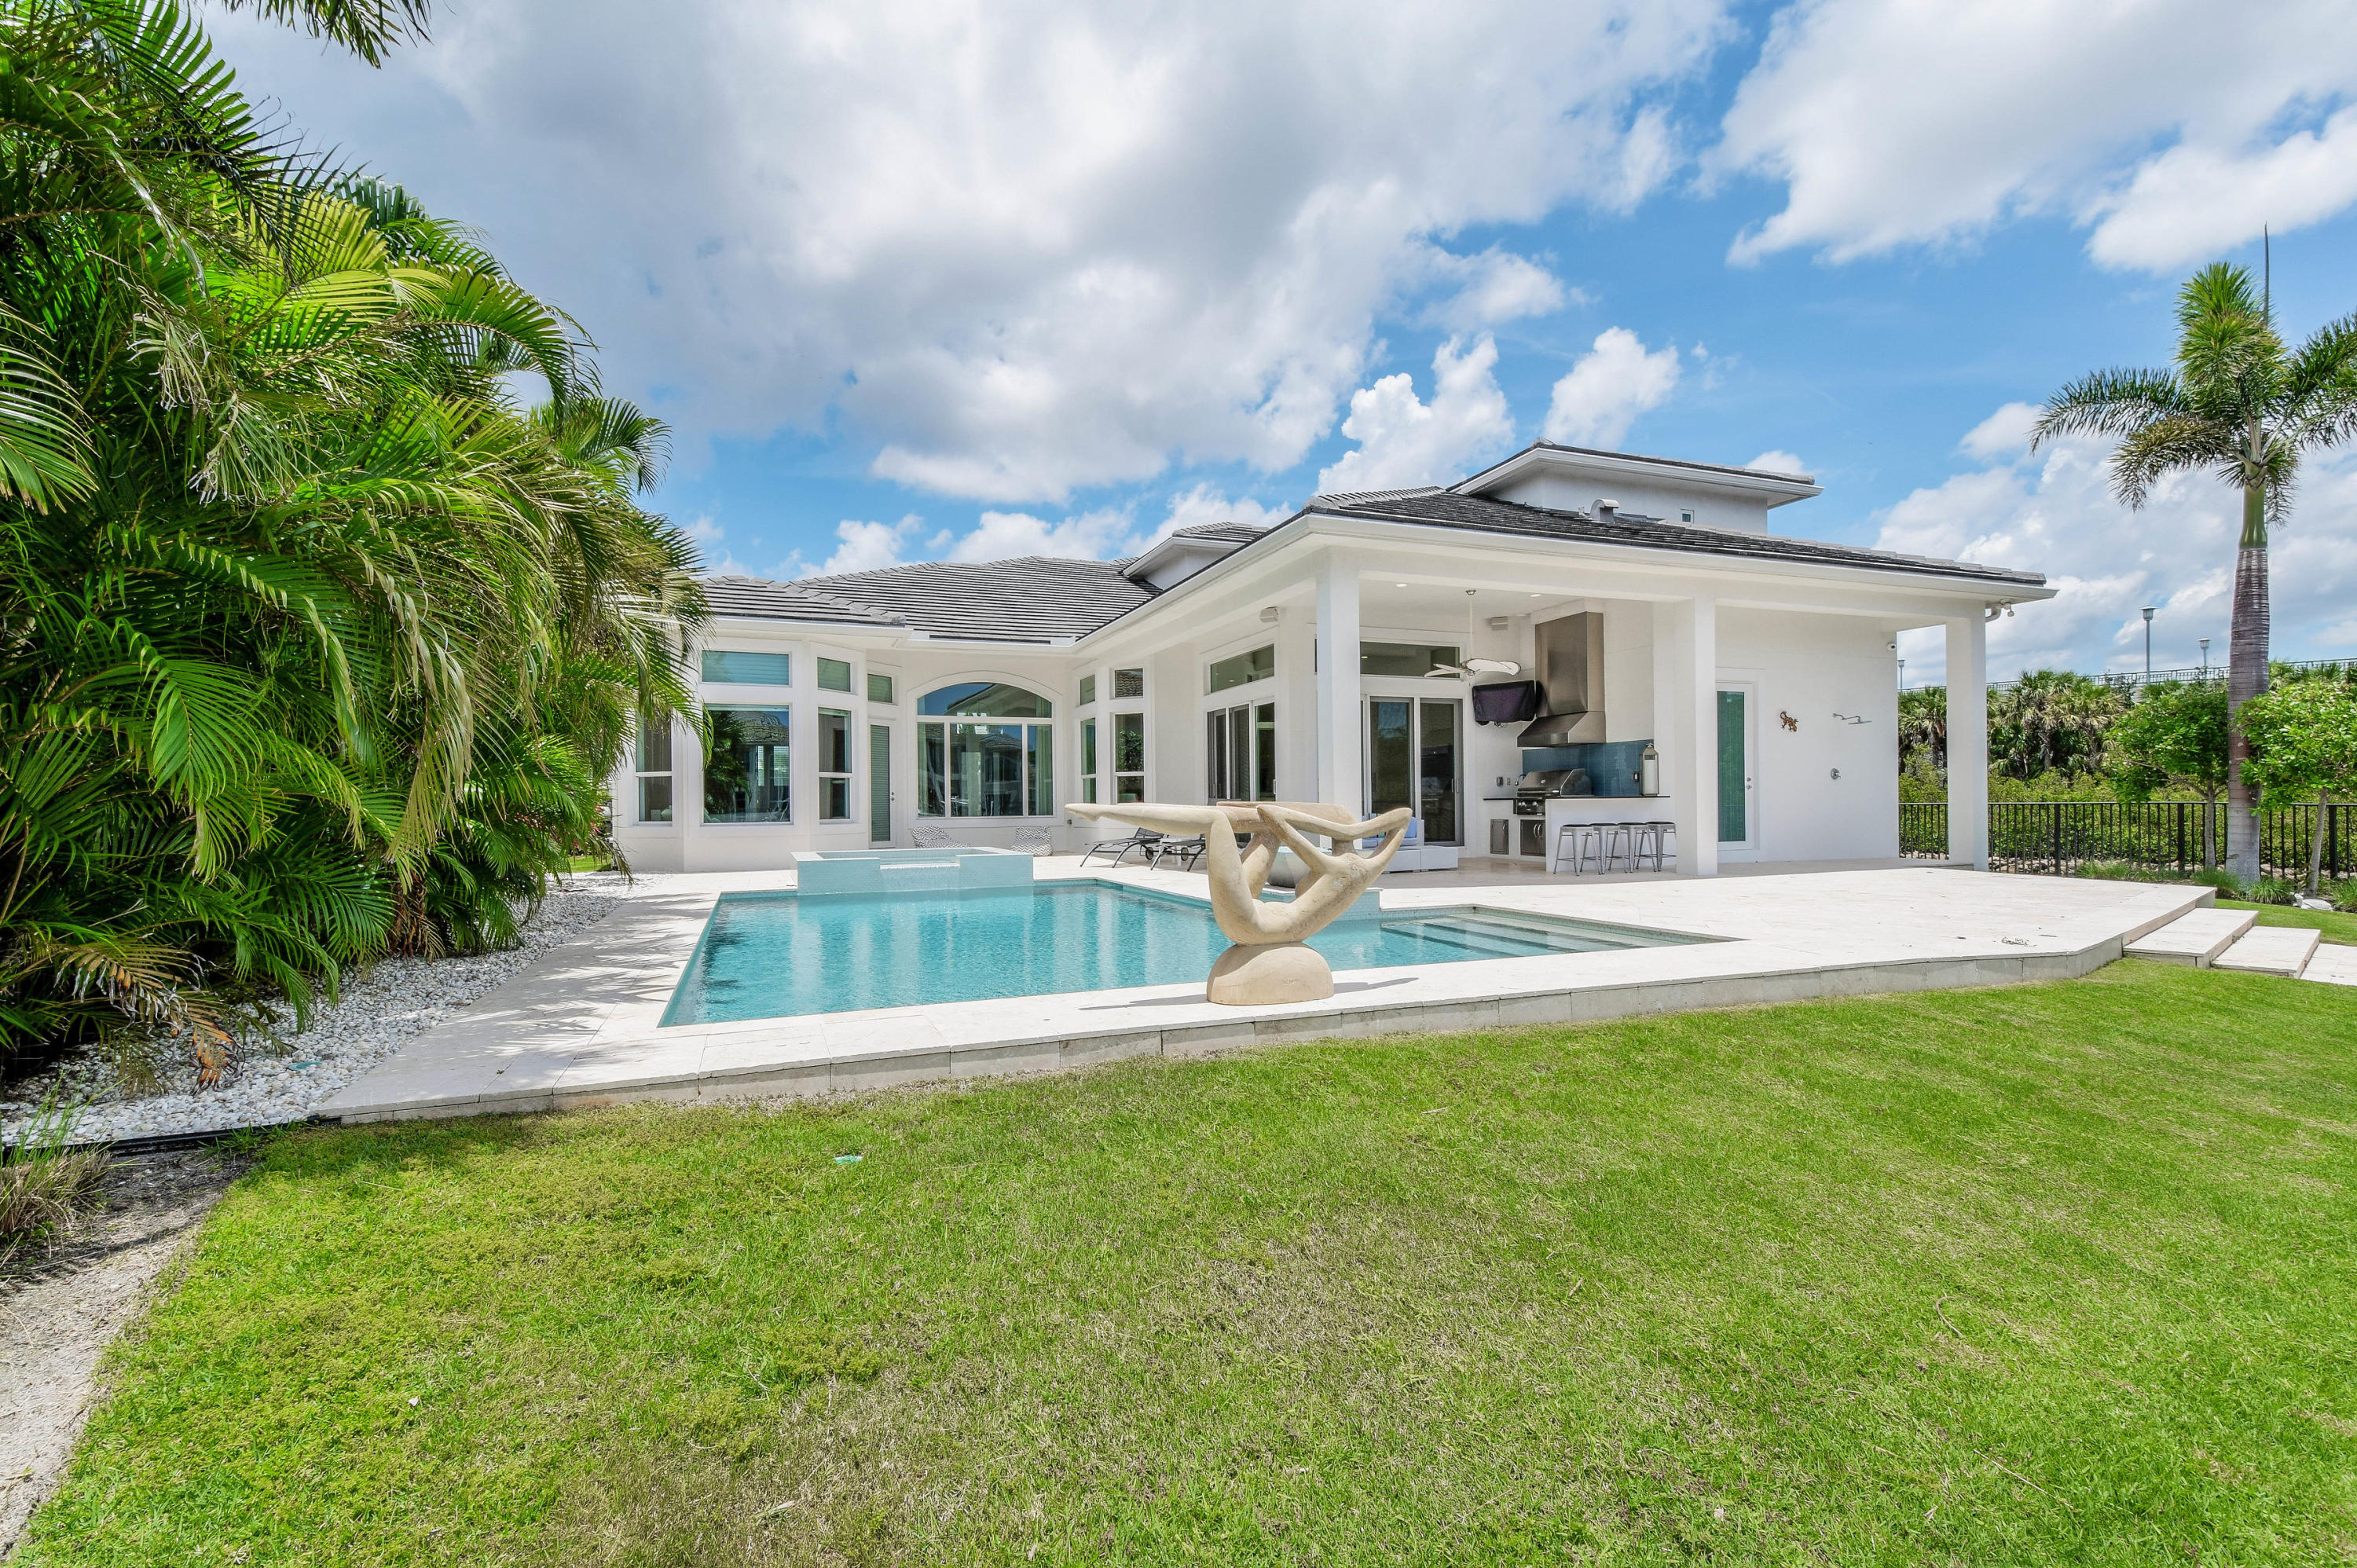 13966 Chester Bay Lane, North Palm Beach, Florida 33408, 4 Bedrooms Bedrooms, ,5.2 BathroomsBathrooms,A,Single family,Chester Bay,RX-10438925